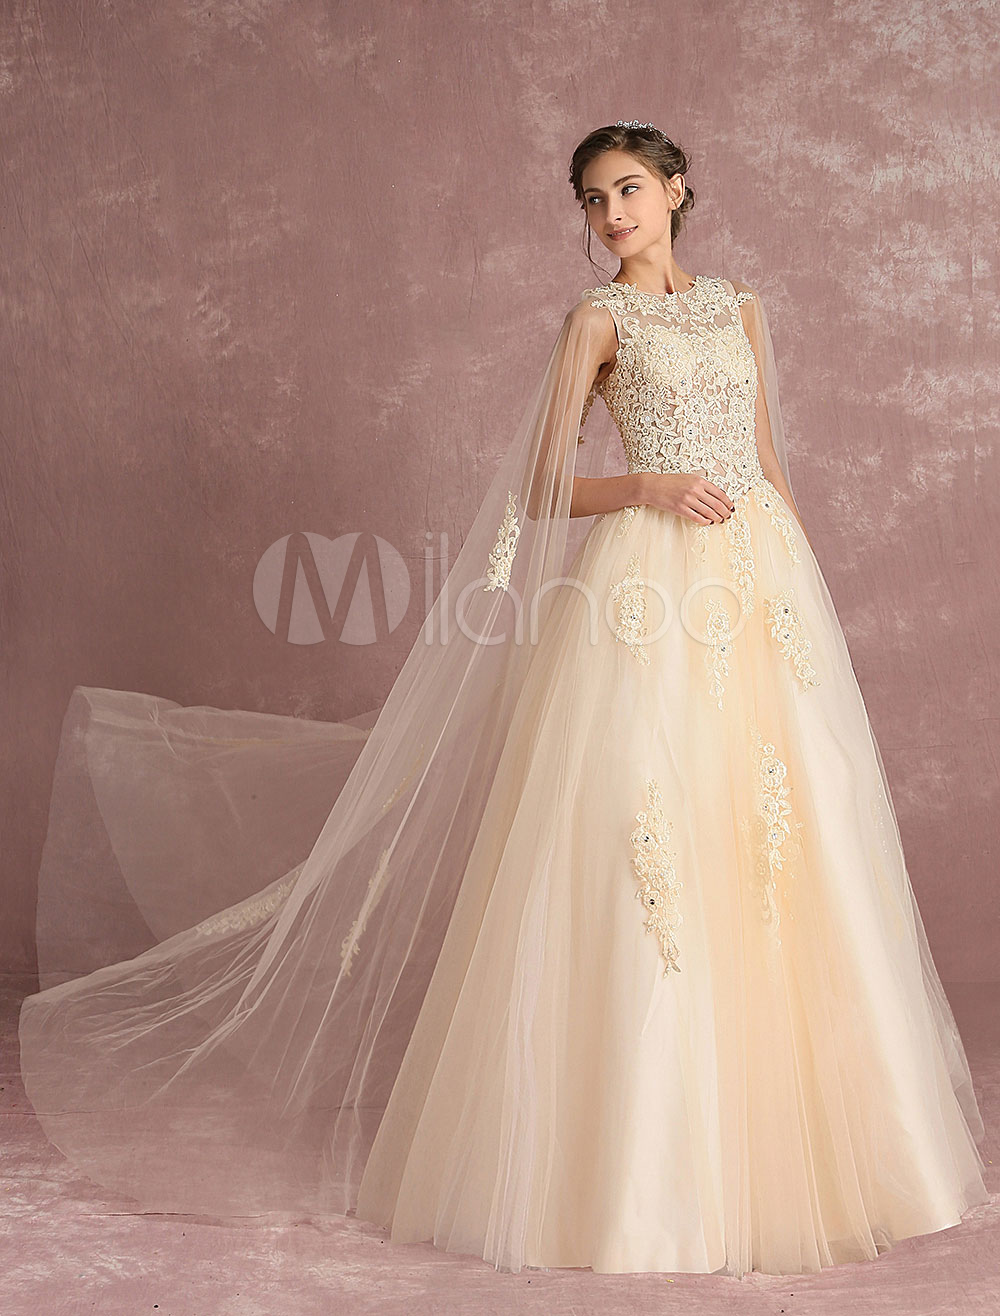 Buy Tulle Wedding Dress Vanilla Cream Bridal Dress Watteau Train Lace Applique Beading Cutout Back Illusion A Line Floor Length Bridal Gown for $193.49 in Milanoo store